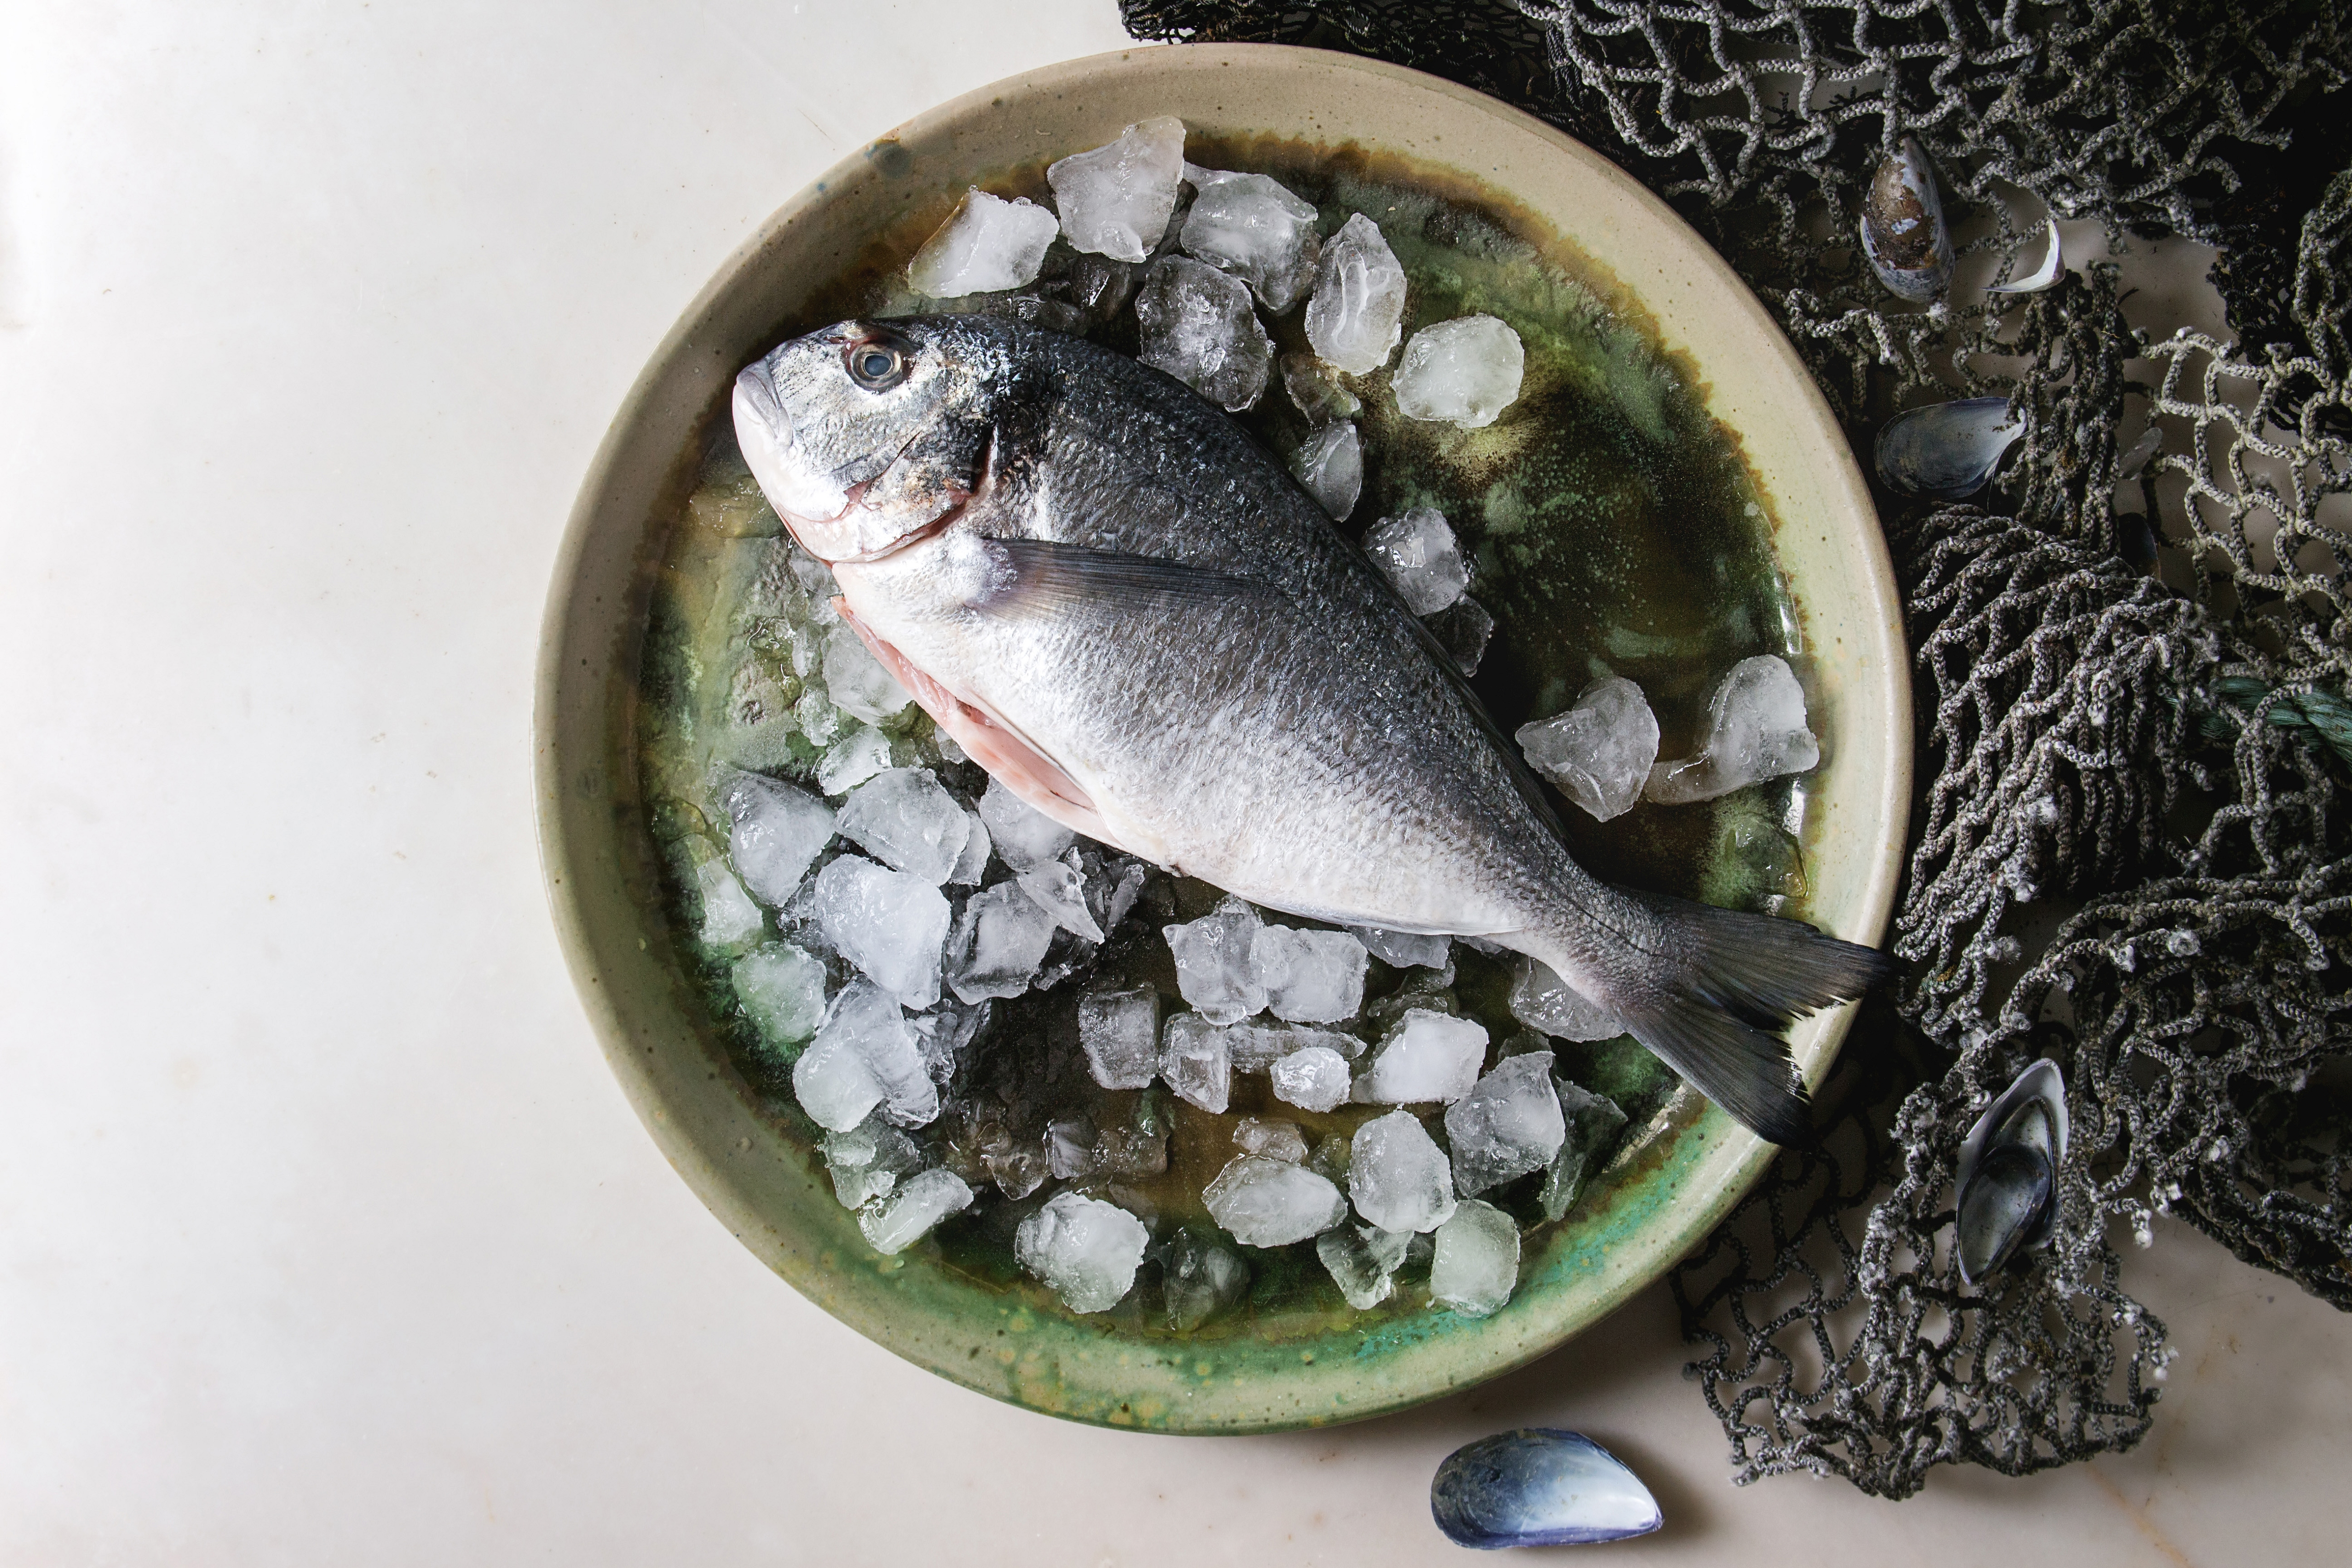 Raw uncooked gutted sea bream or dorado fish on ceramic plate with ice and old sea fishing nets and shells over white marble background. Flat lay. copy space. Cooking concept